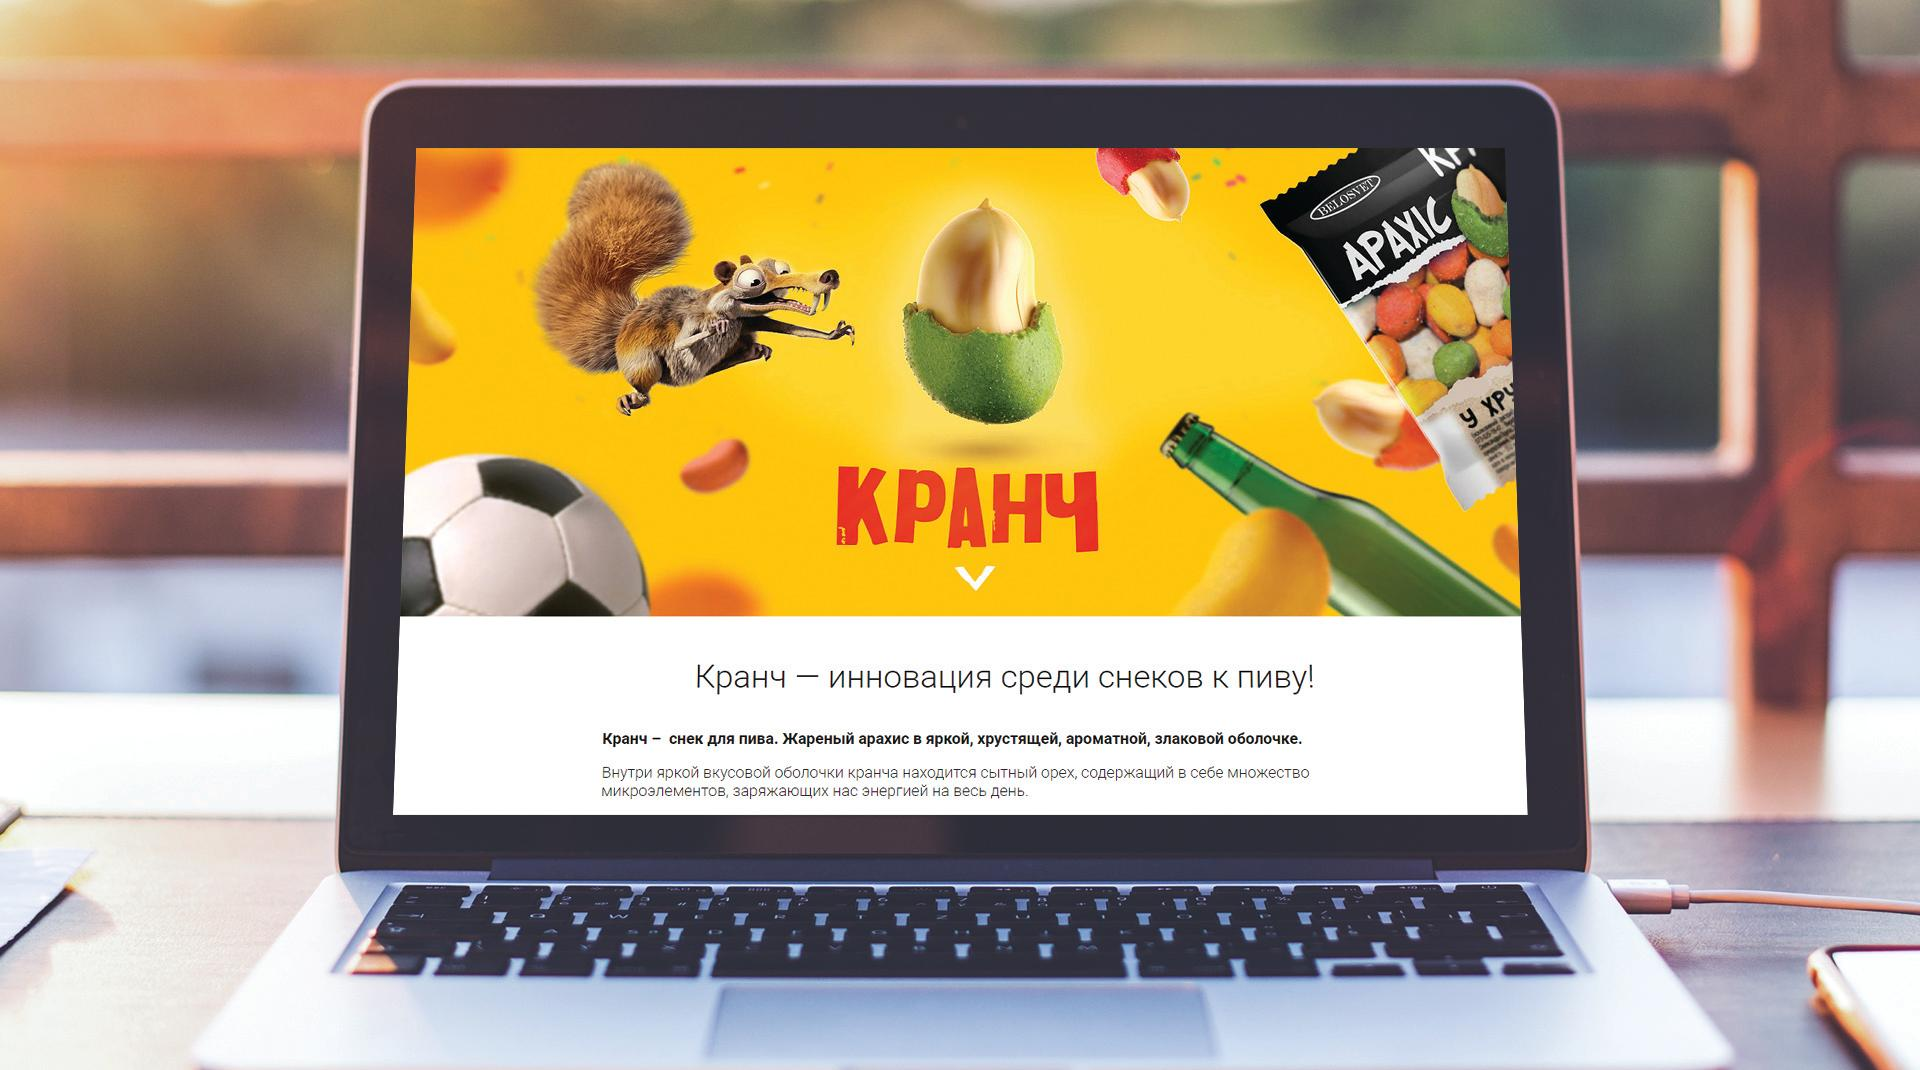 Дизайн of the website для снеков к пиву